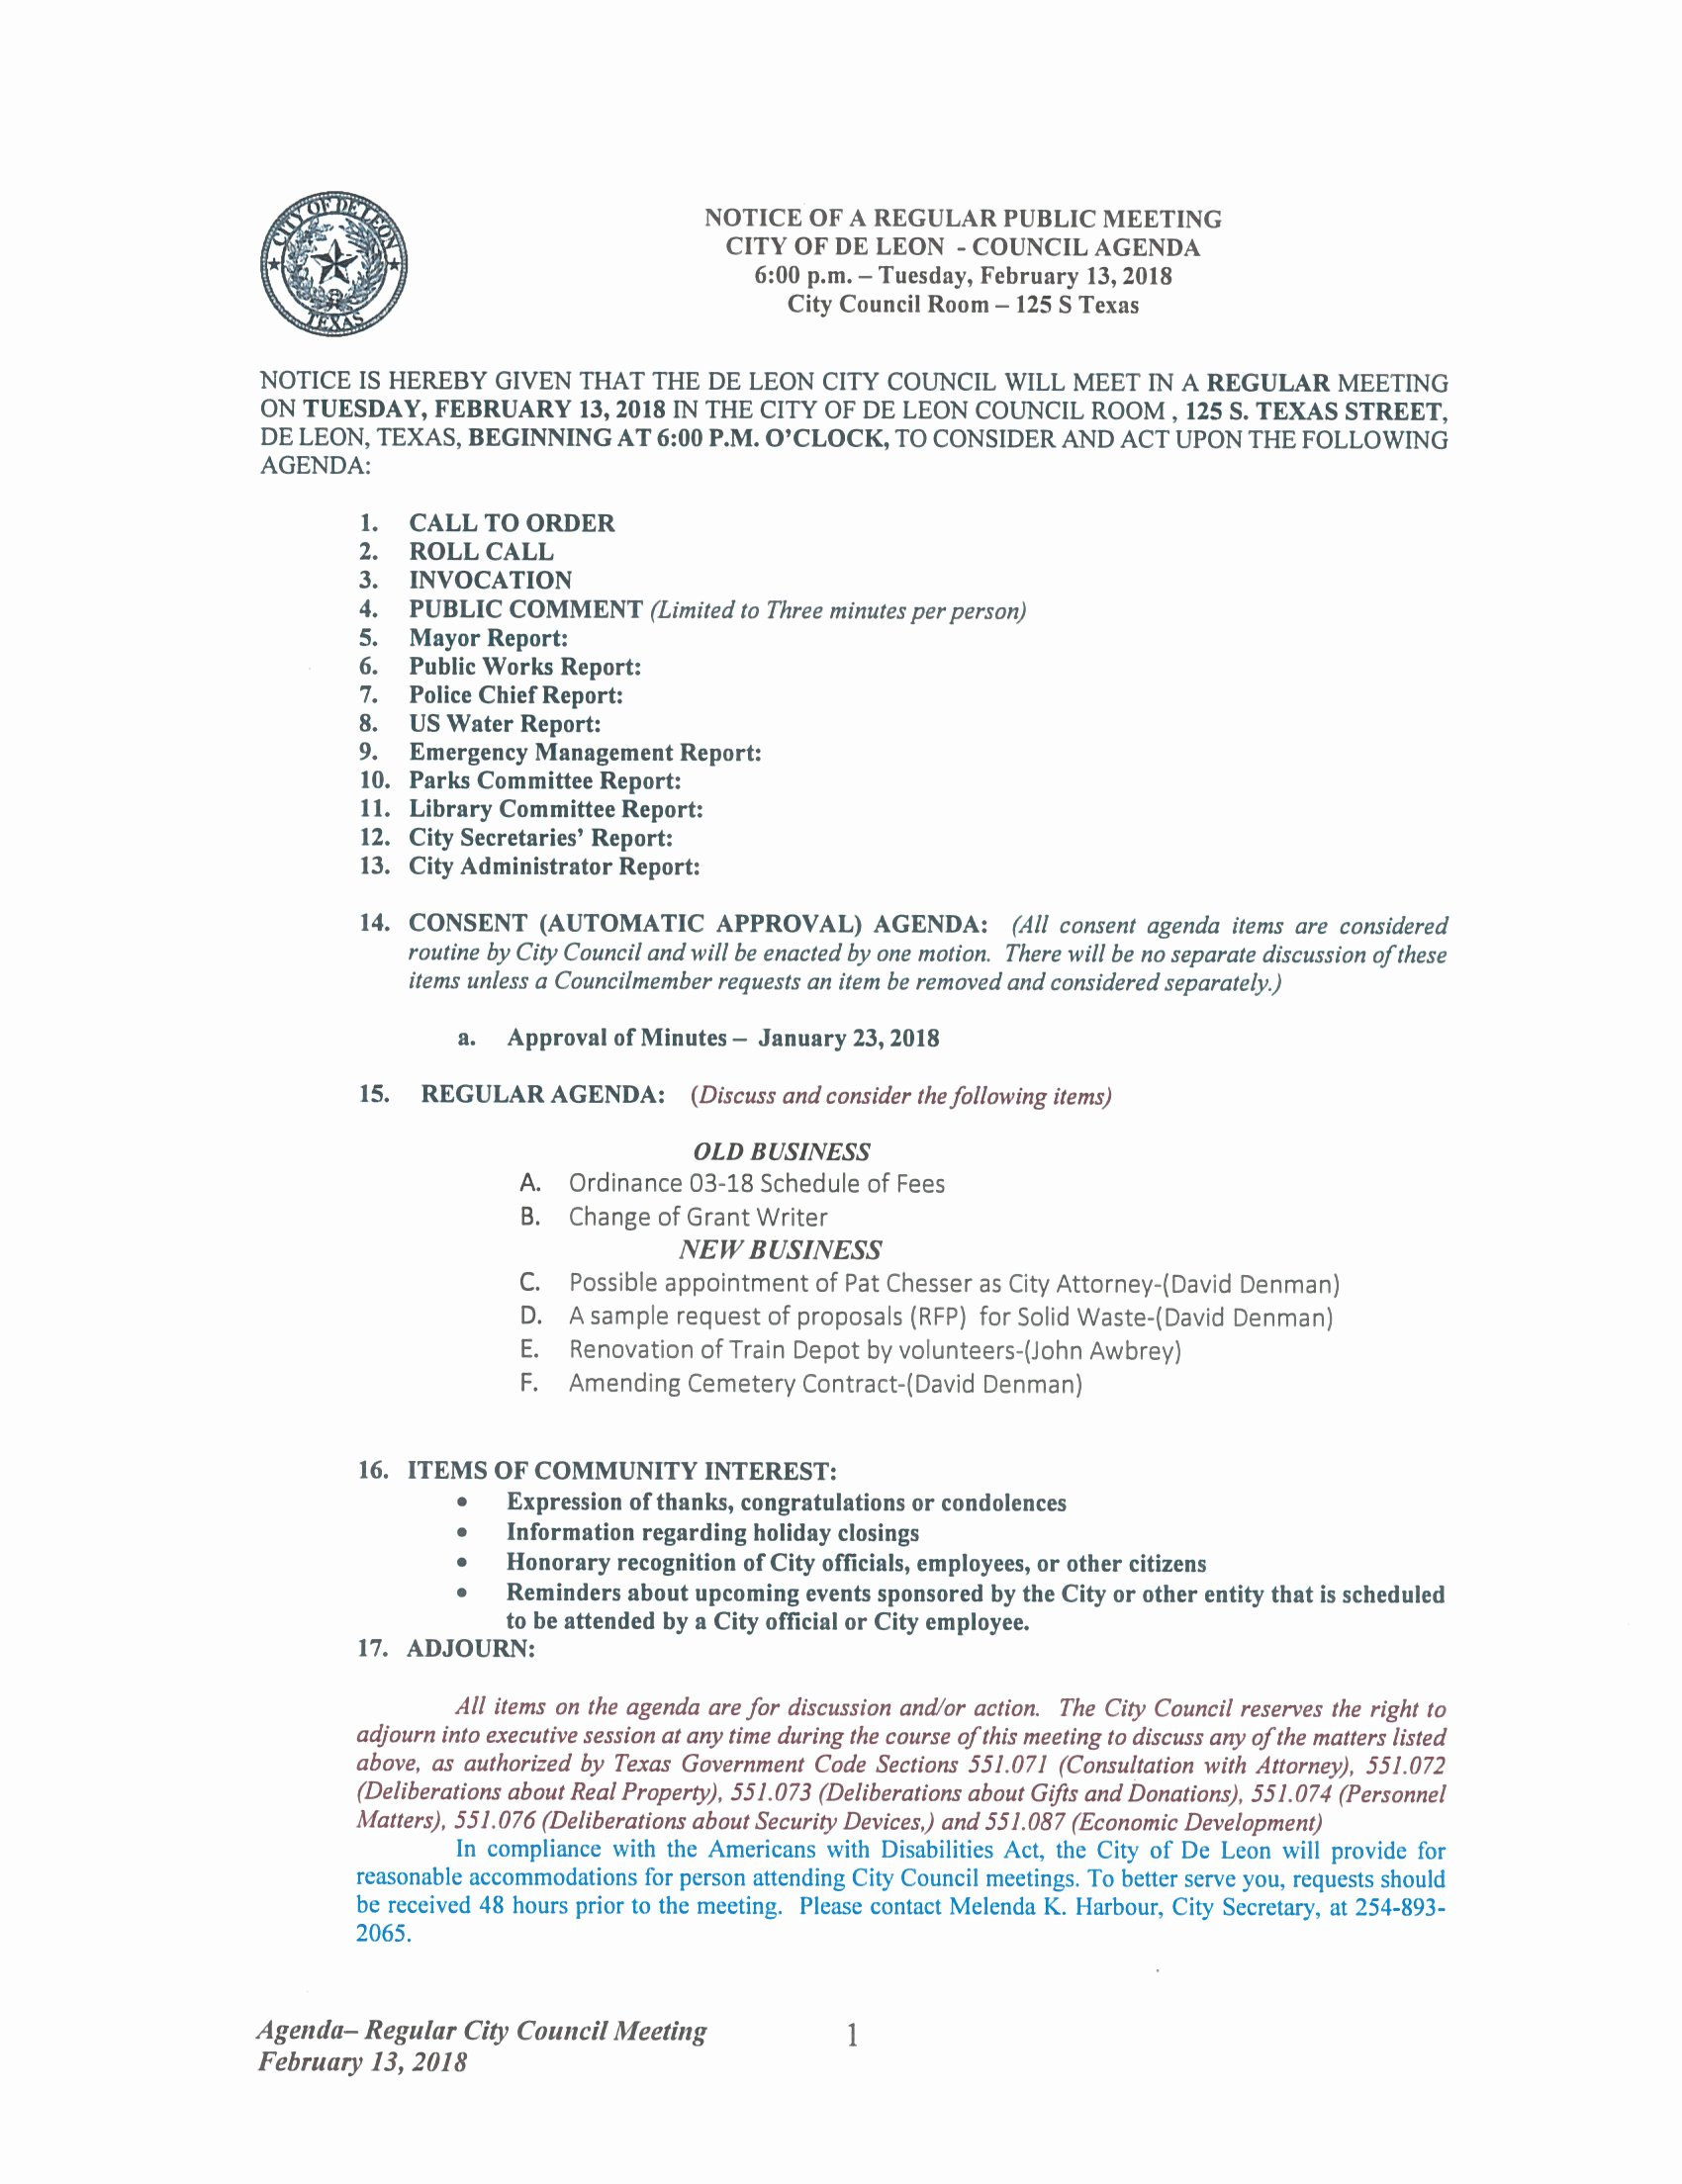 Town Hall Meeting Agenda Sample Awesome Regular City Council Meeting February 2018 De Leon